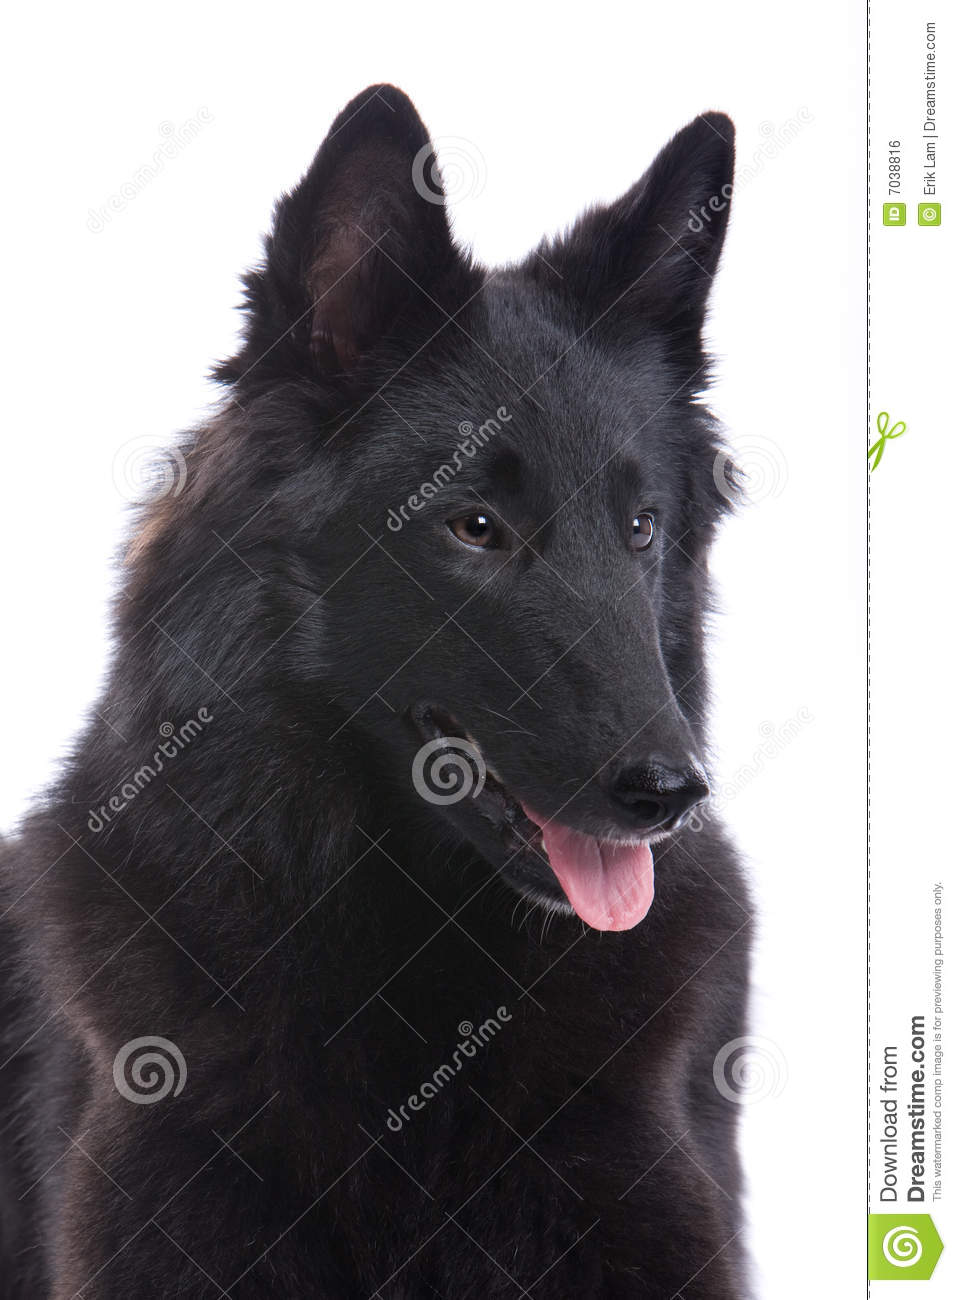 Belgian Shepherd Dog Royalty Free Stock Image - Image: 7038816